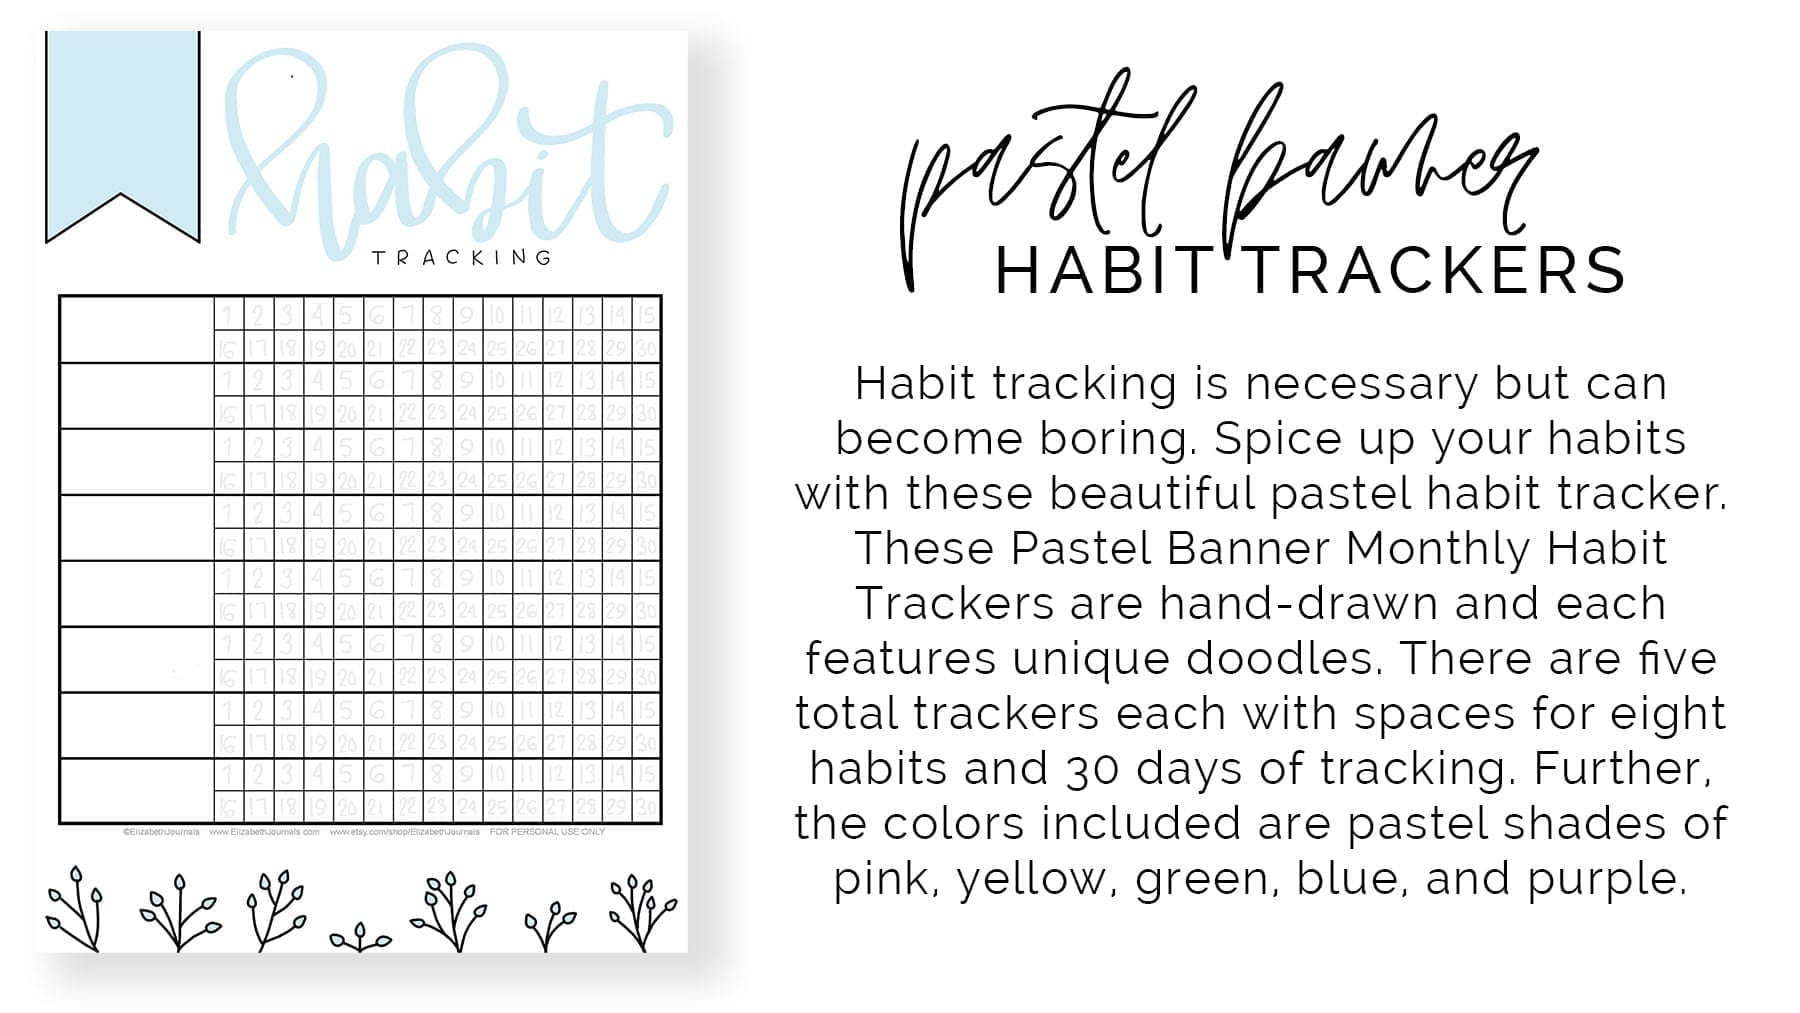 banner 1-product preview-pastel banner monthly habit tracker-product description